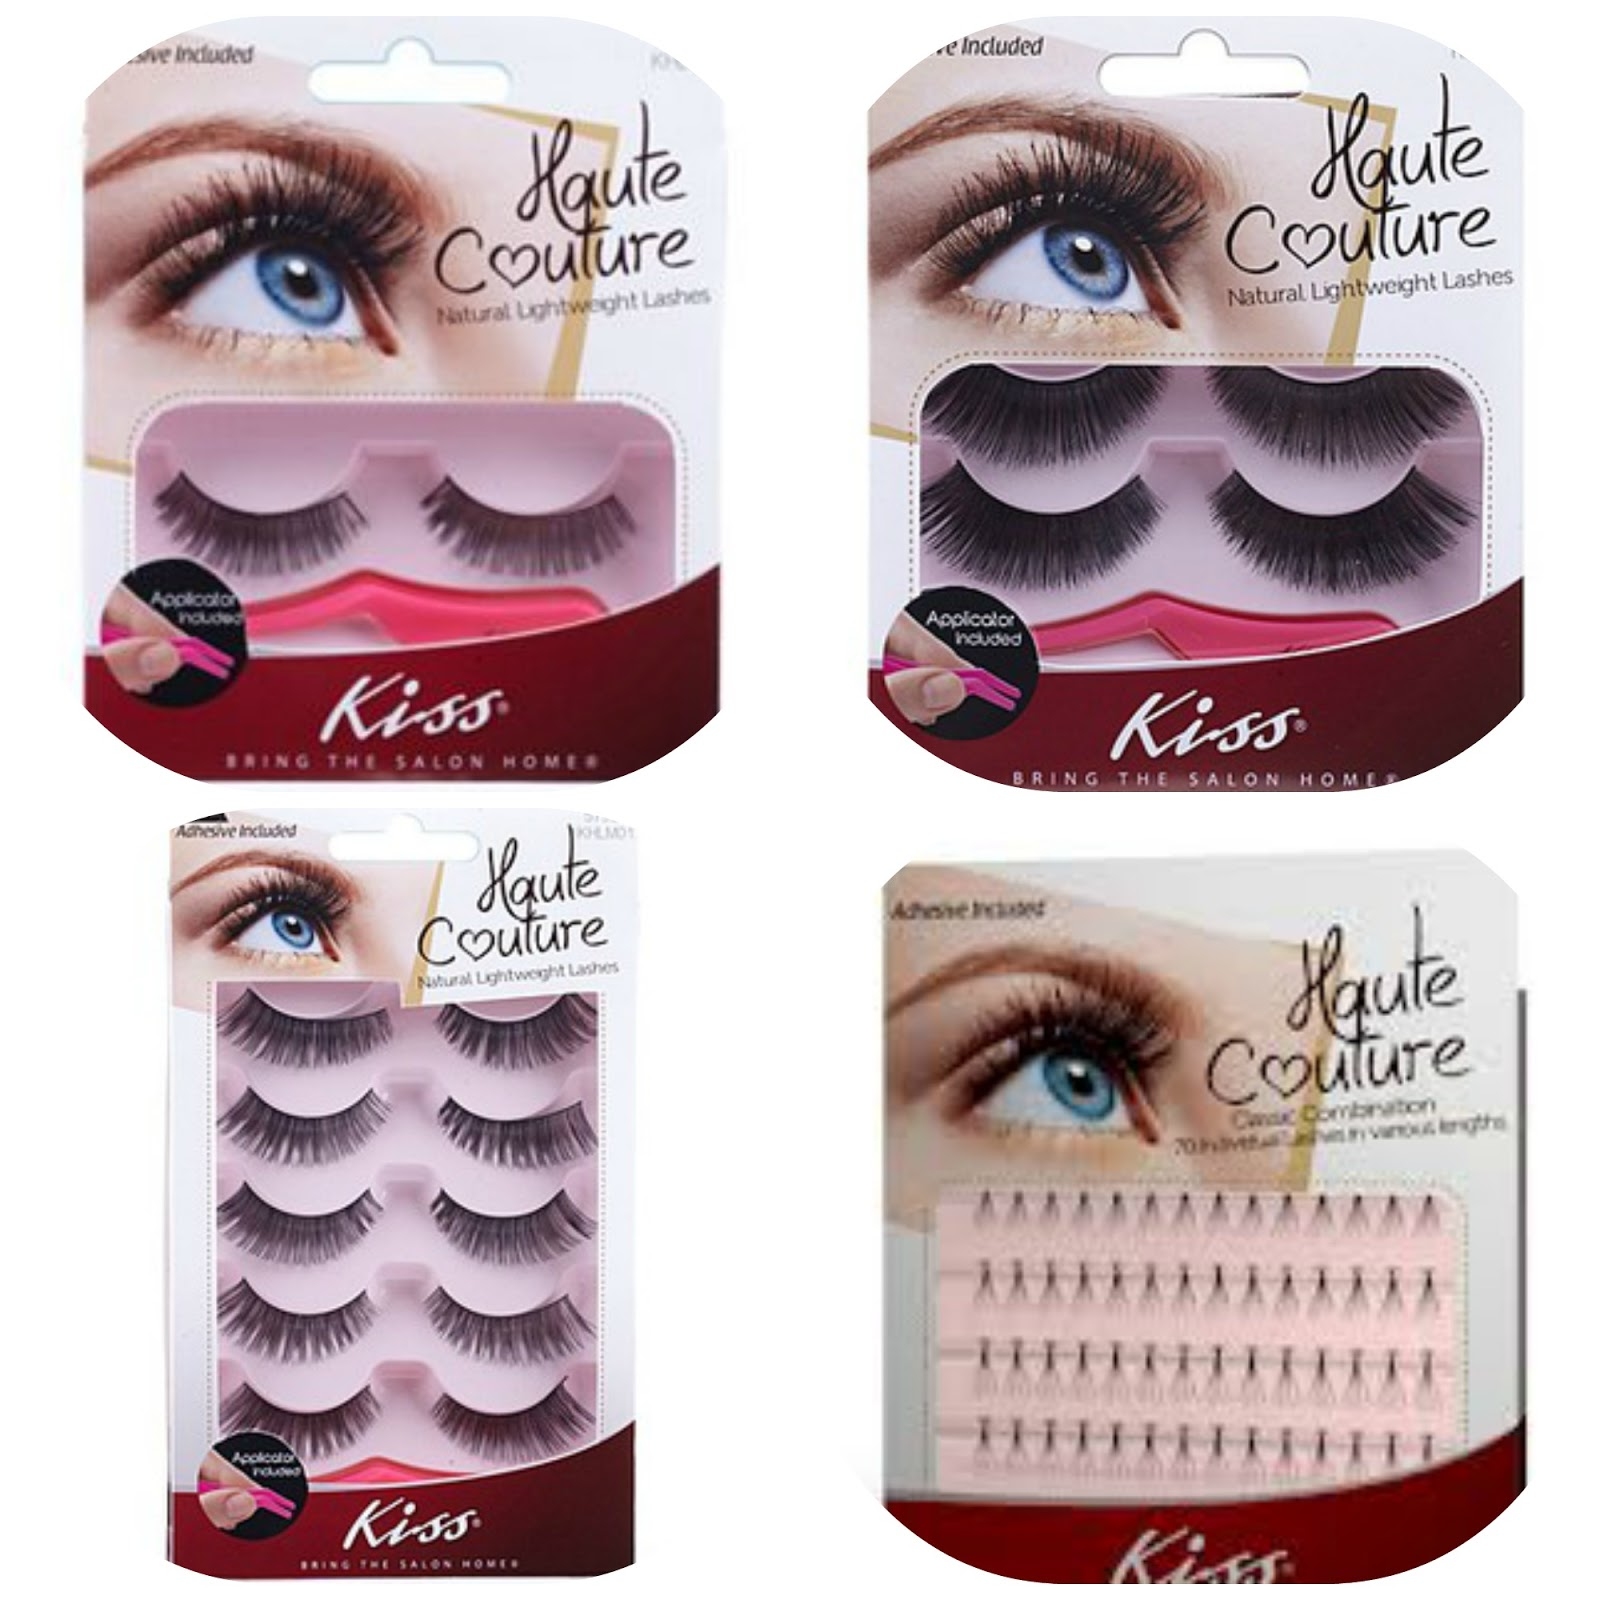 The Beauty Hot Squad Haute Couture Eyelashes